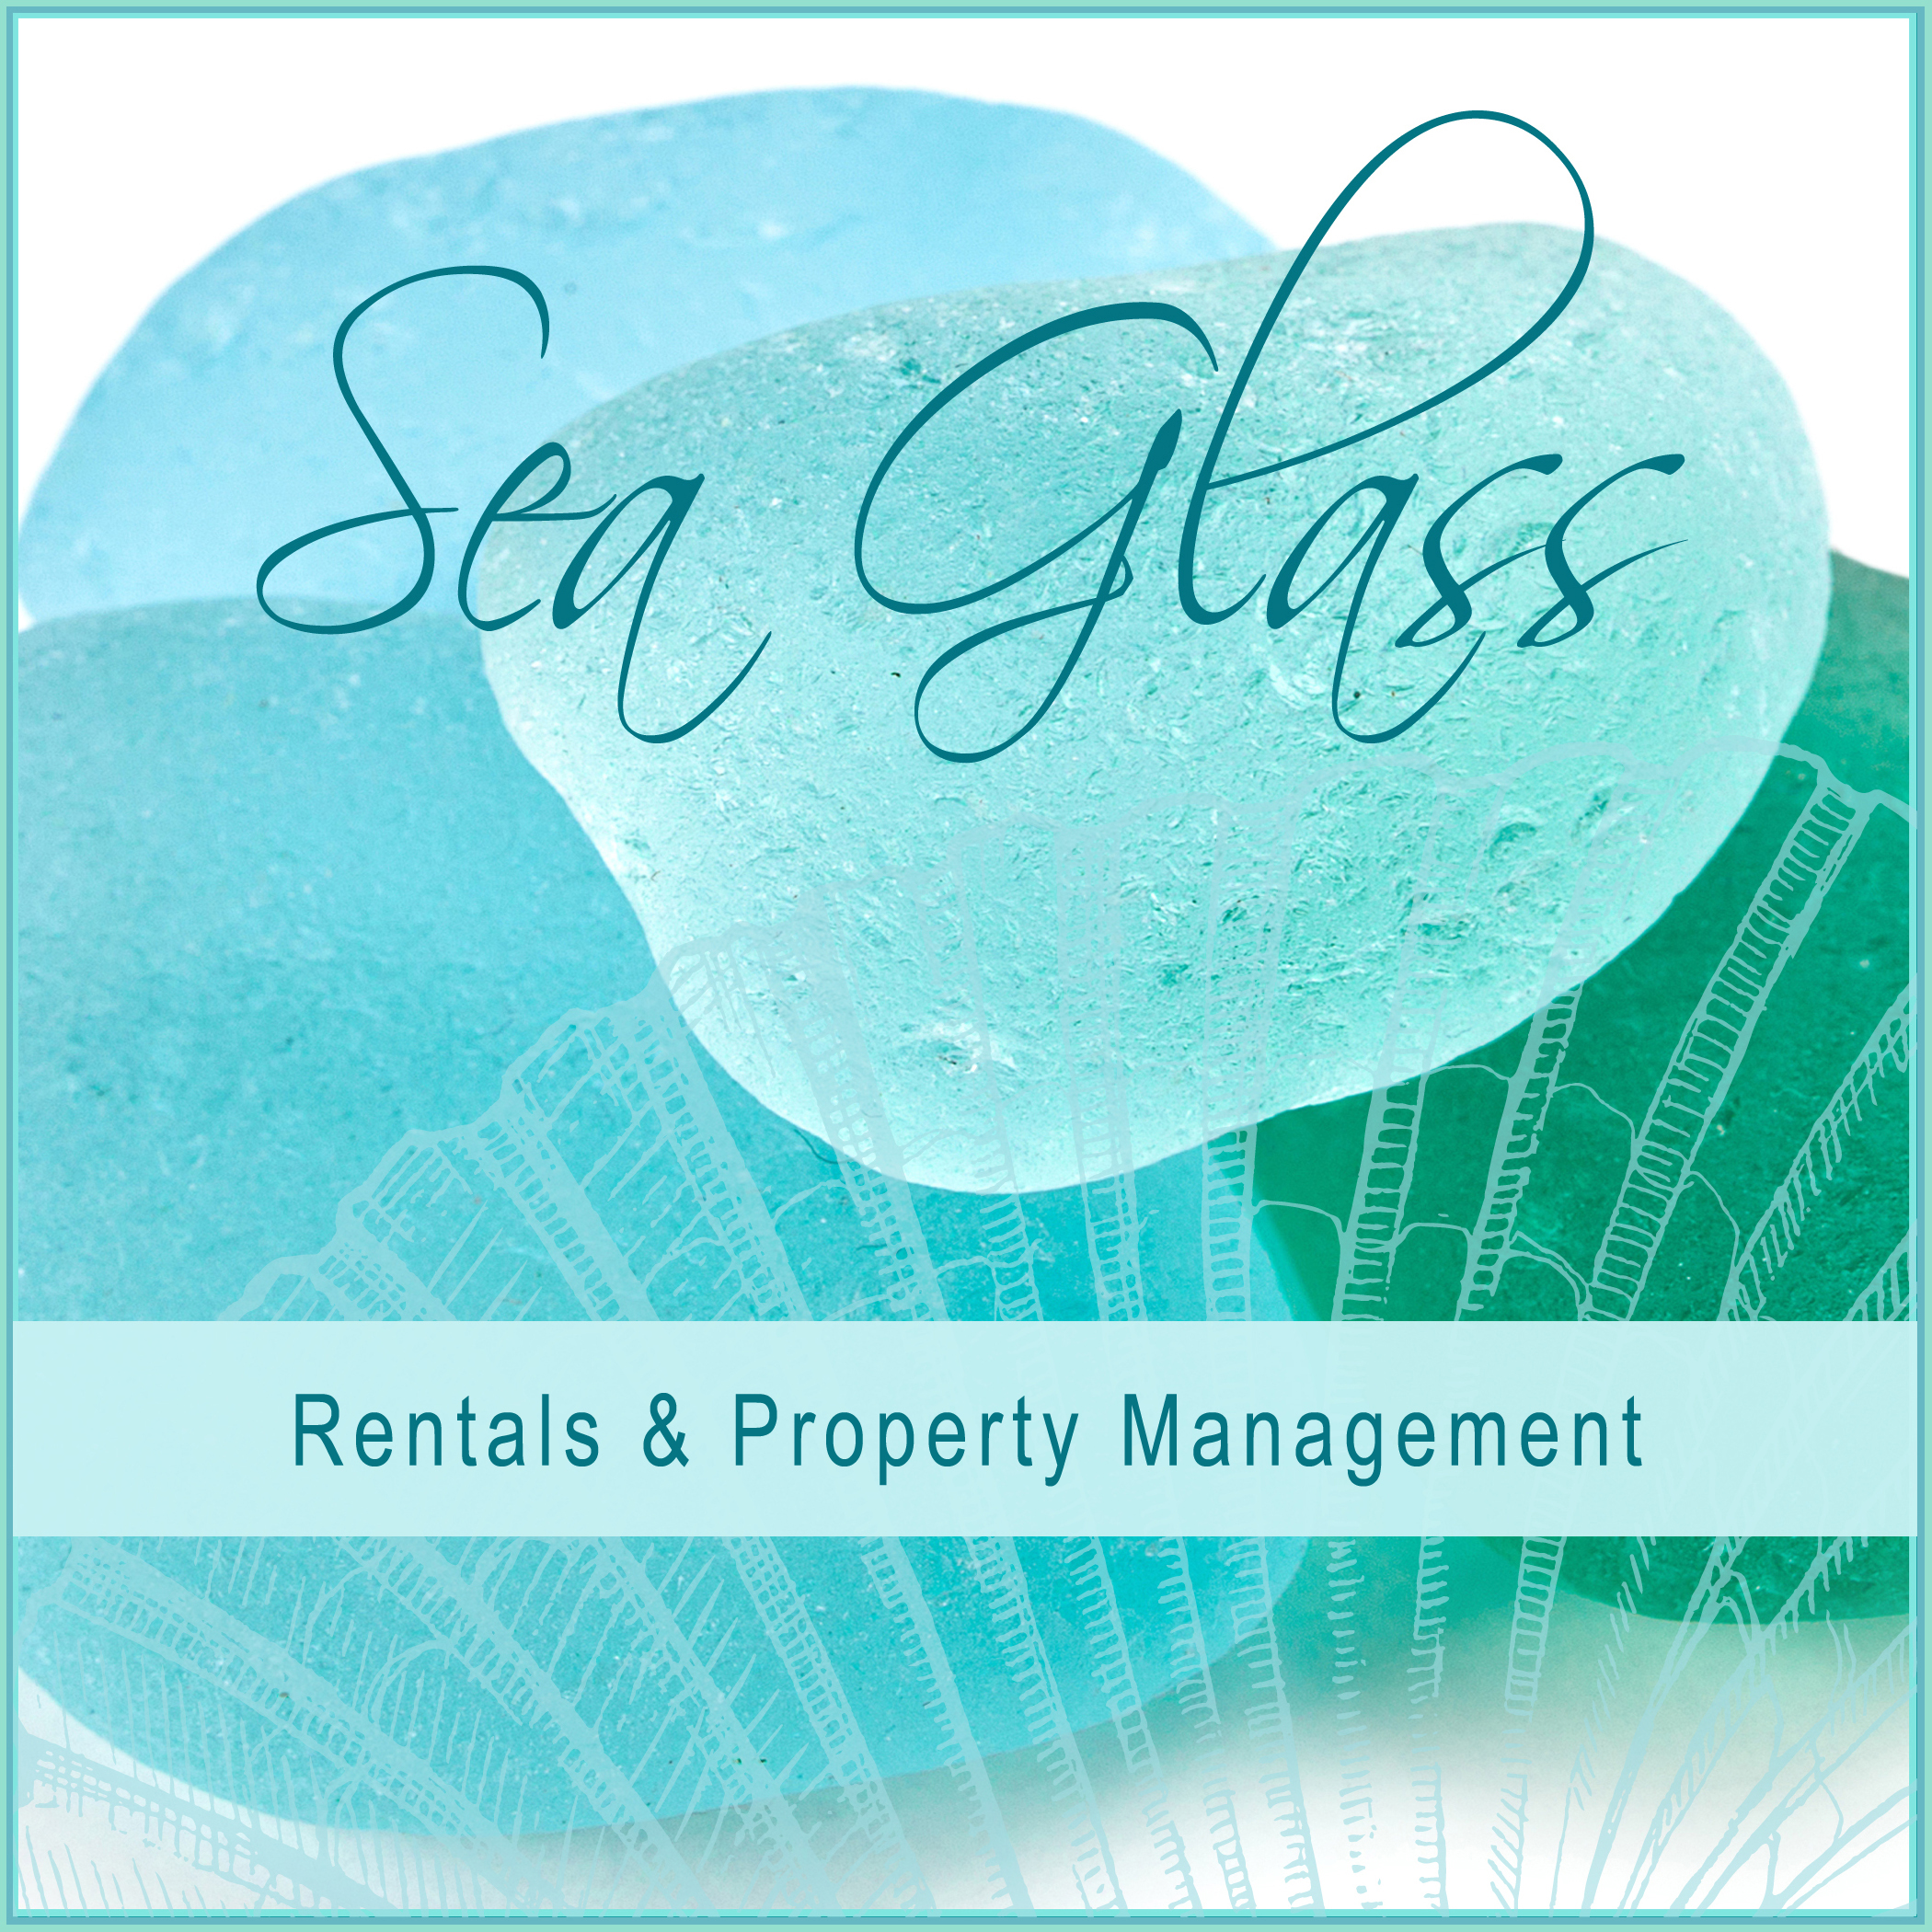 Sea Glass Property Rentals